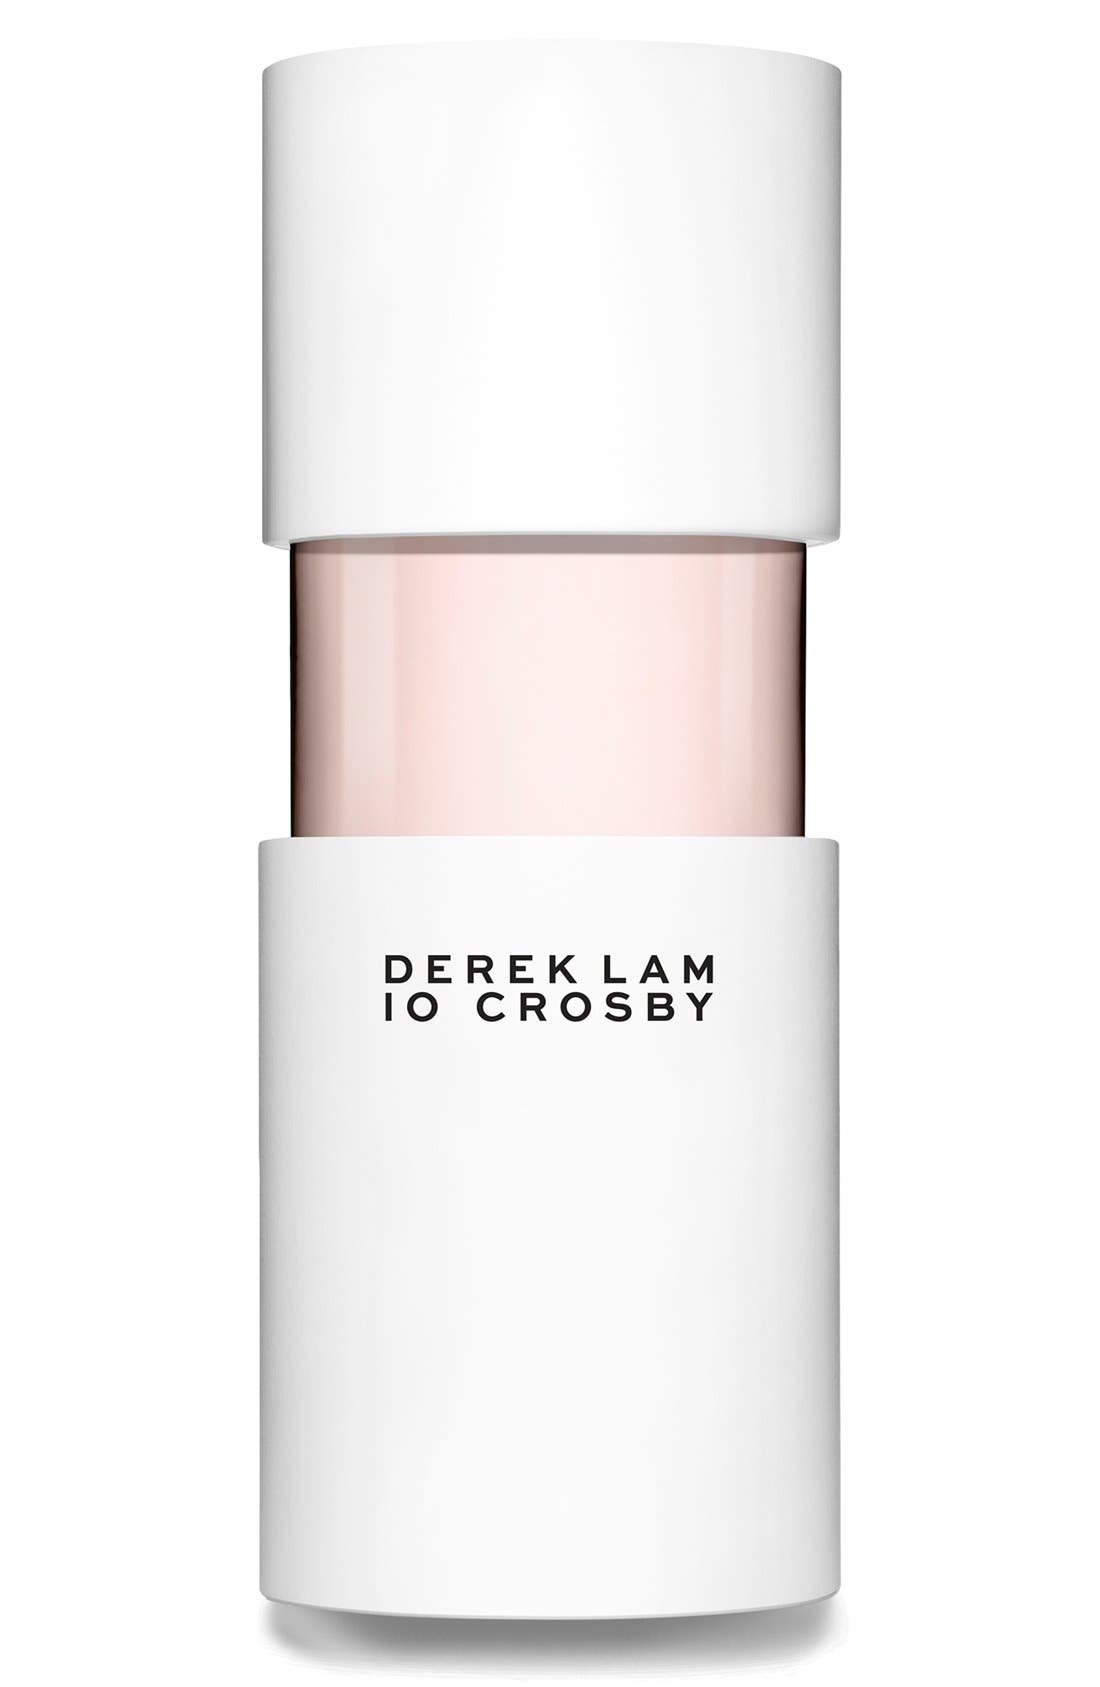 Derek Lam 10 Crosby 'Drunk on Youth' Eau de Parfum